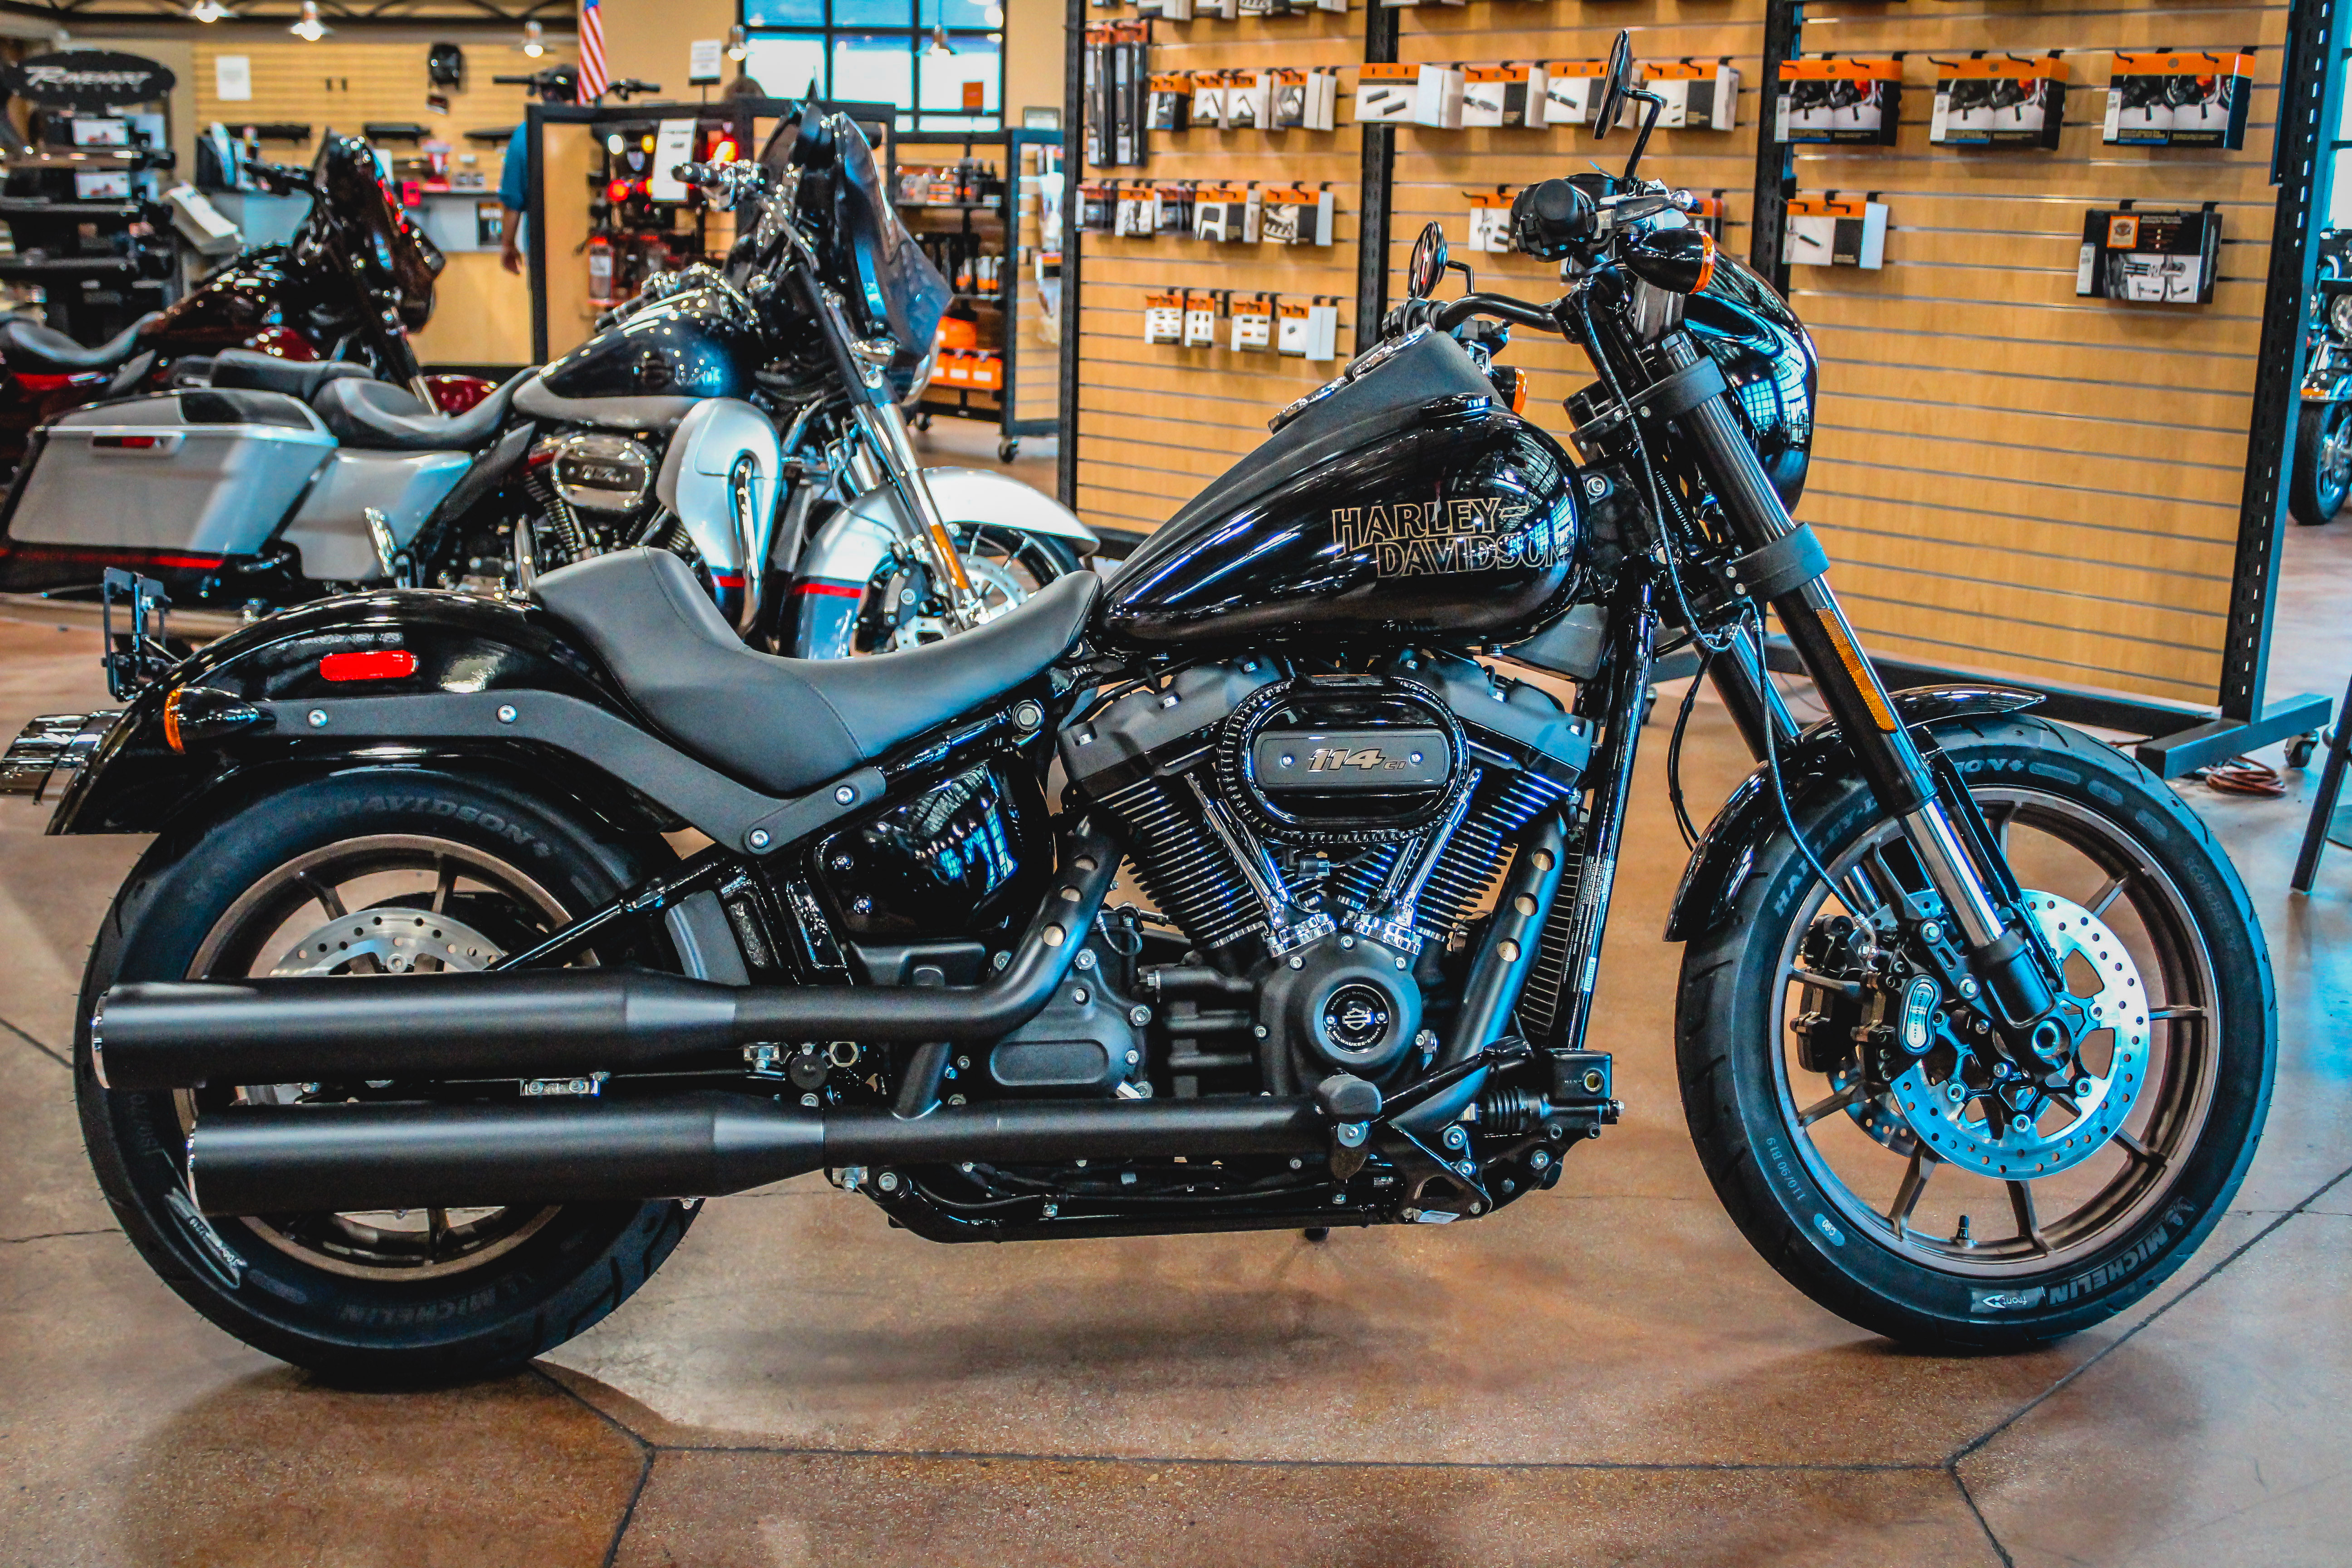 New 2020 Harley-Davidson Low Rider S in El Cajon #D021816 ...